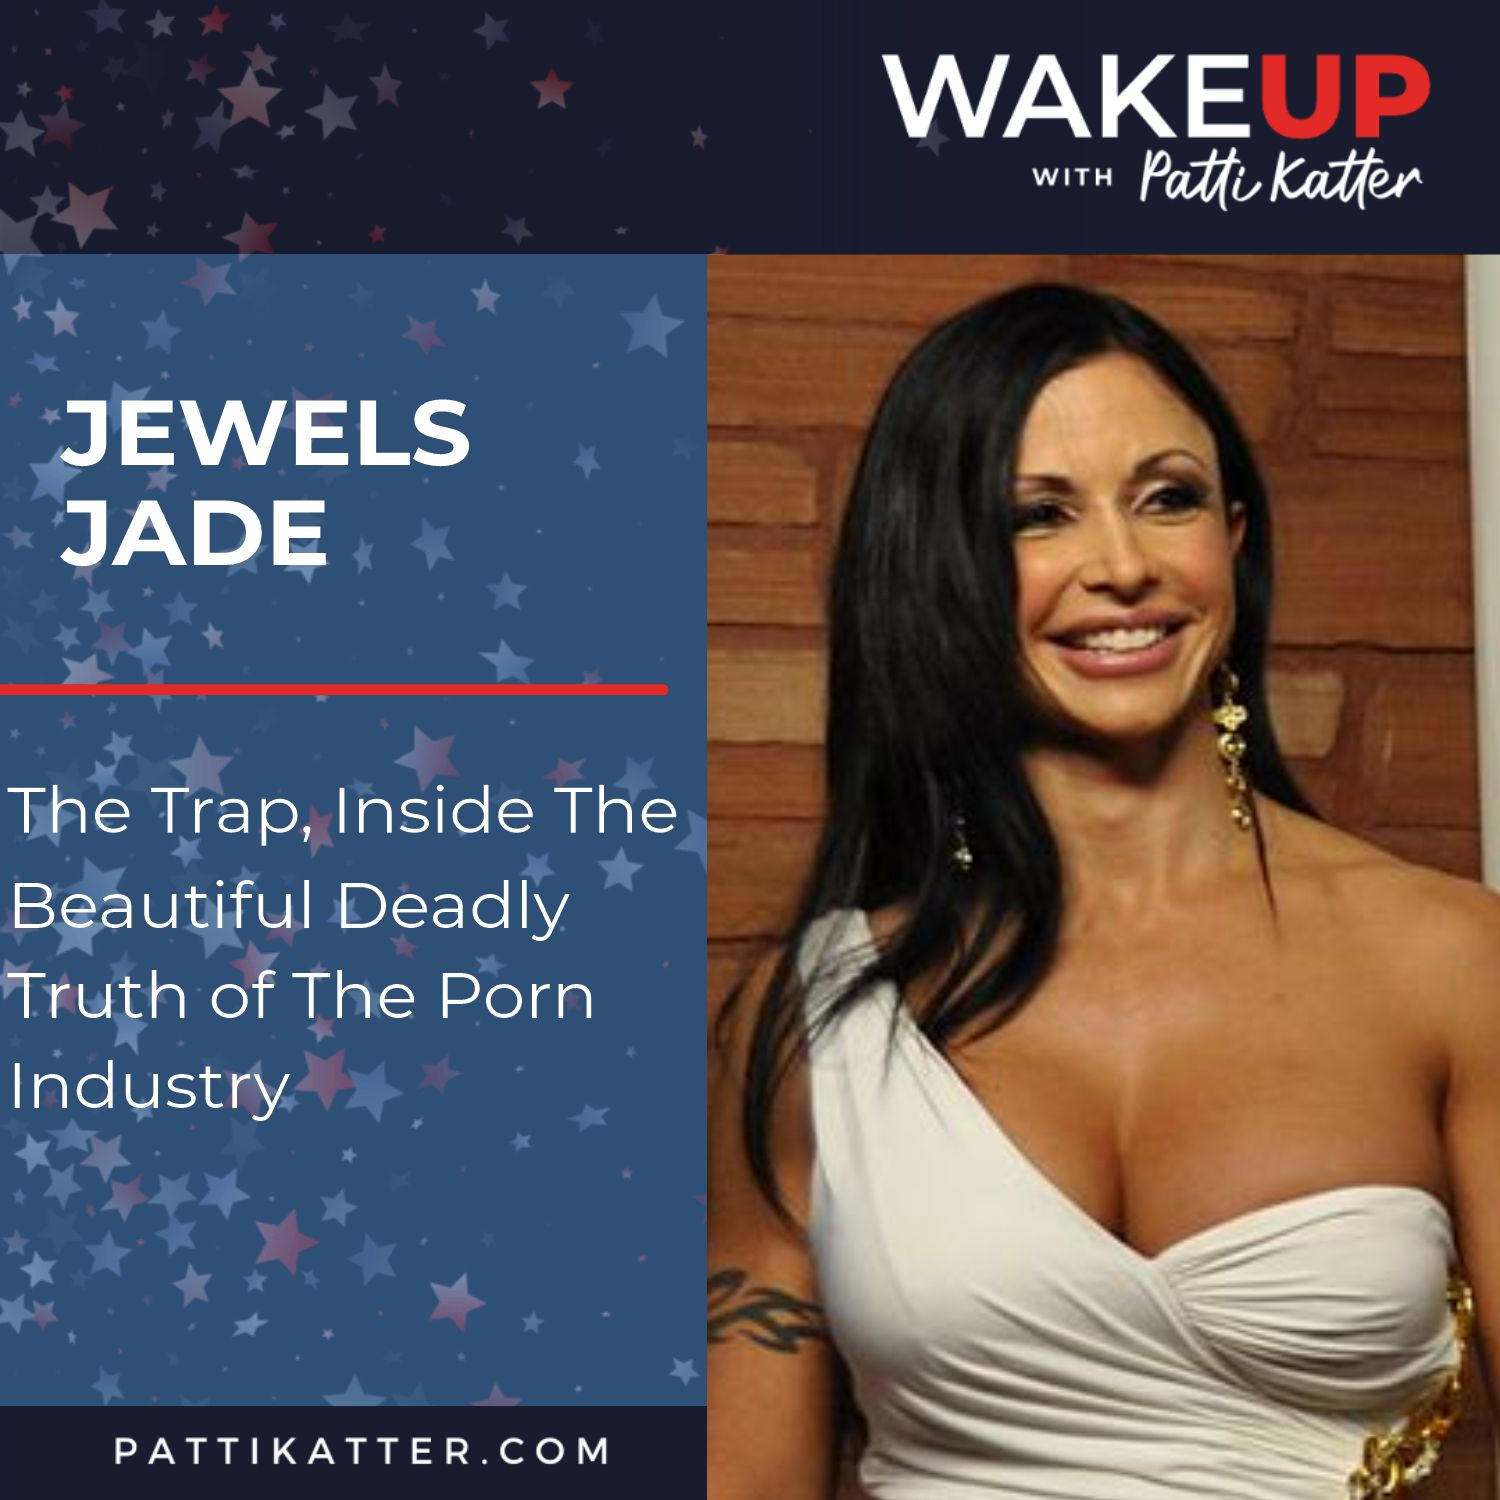 Jewels Jade: The Trap, Inside The Beautiful Deadly Truth of The Porn Industry